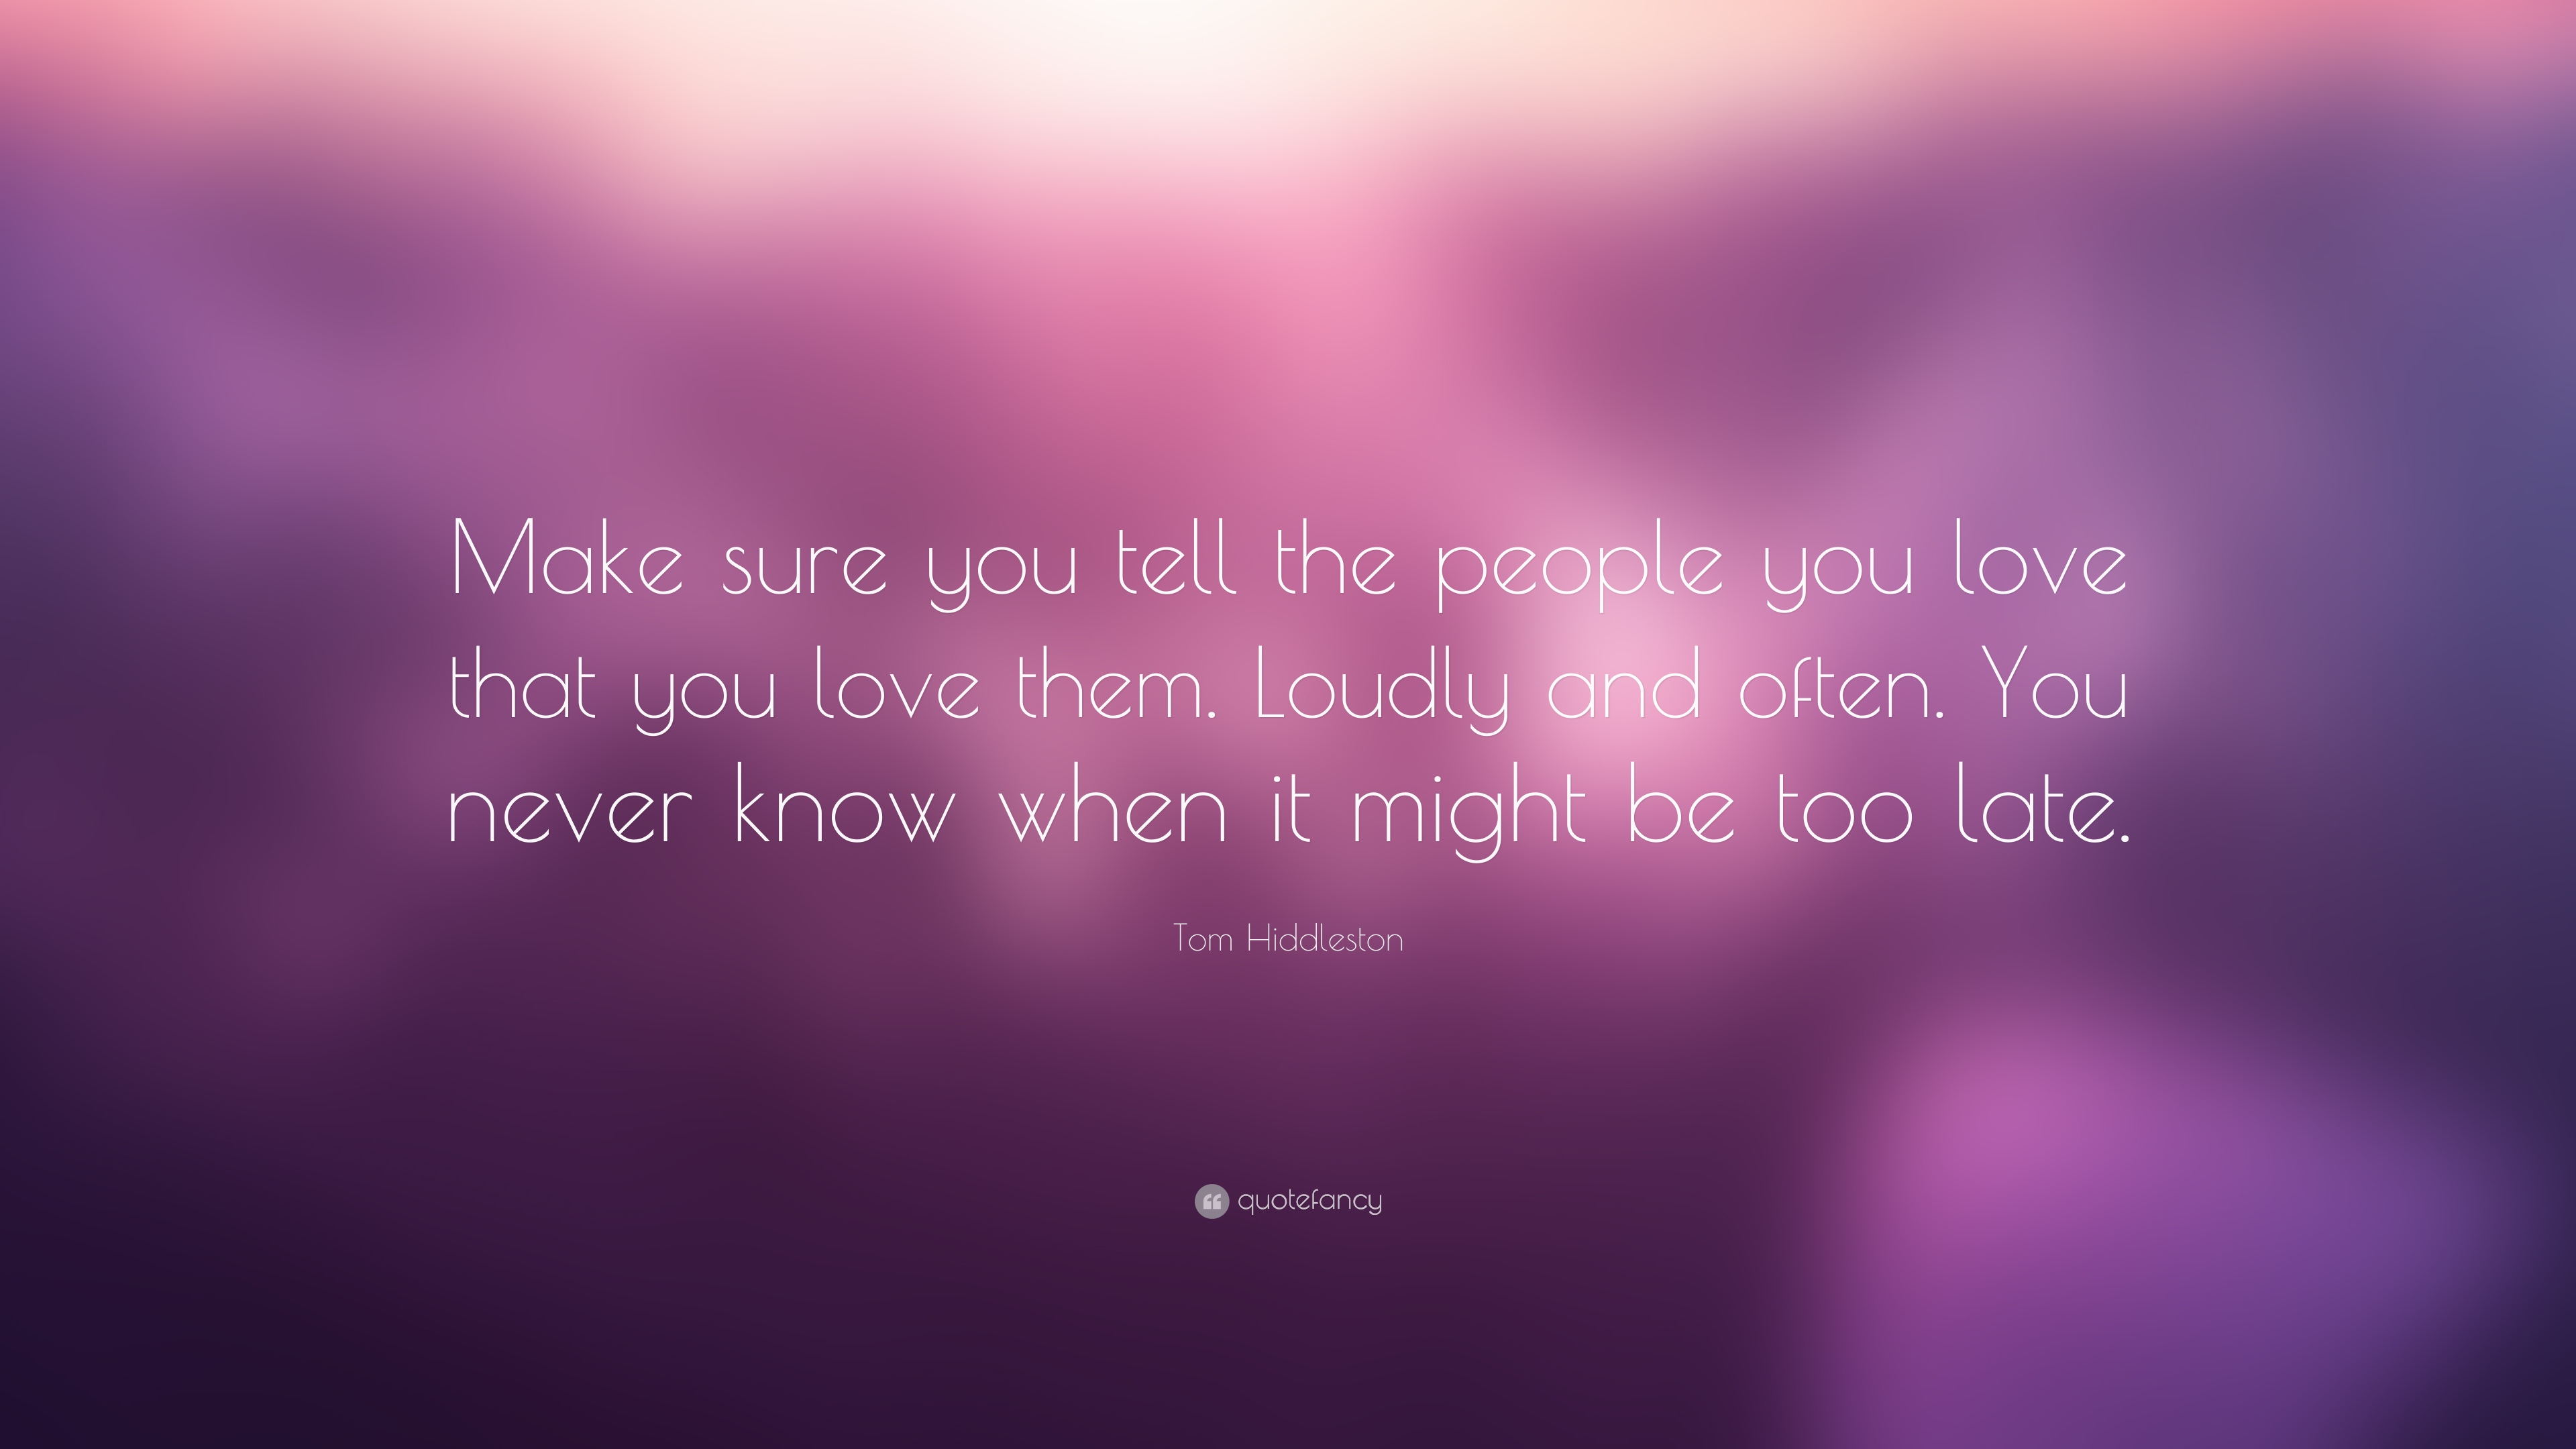 Tom Hiddleston Quote: Make sure you tell the people you